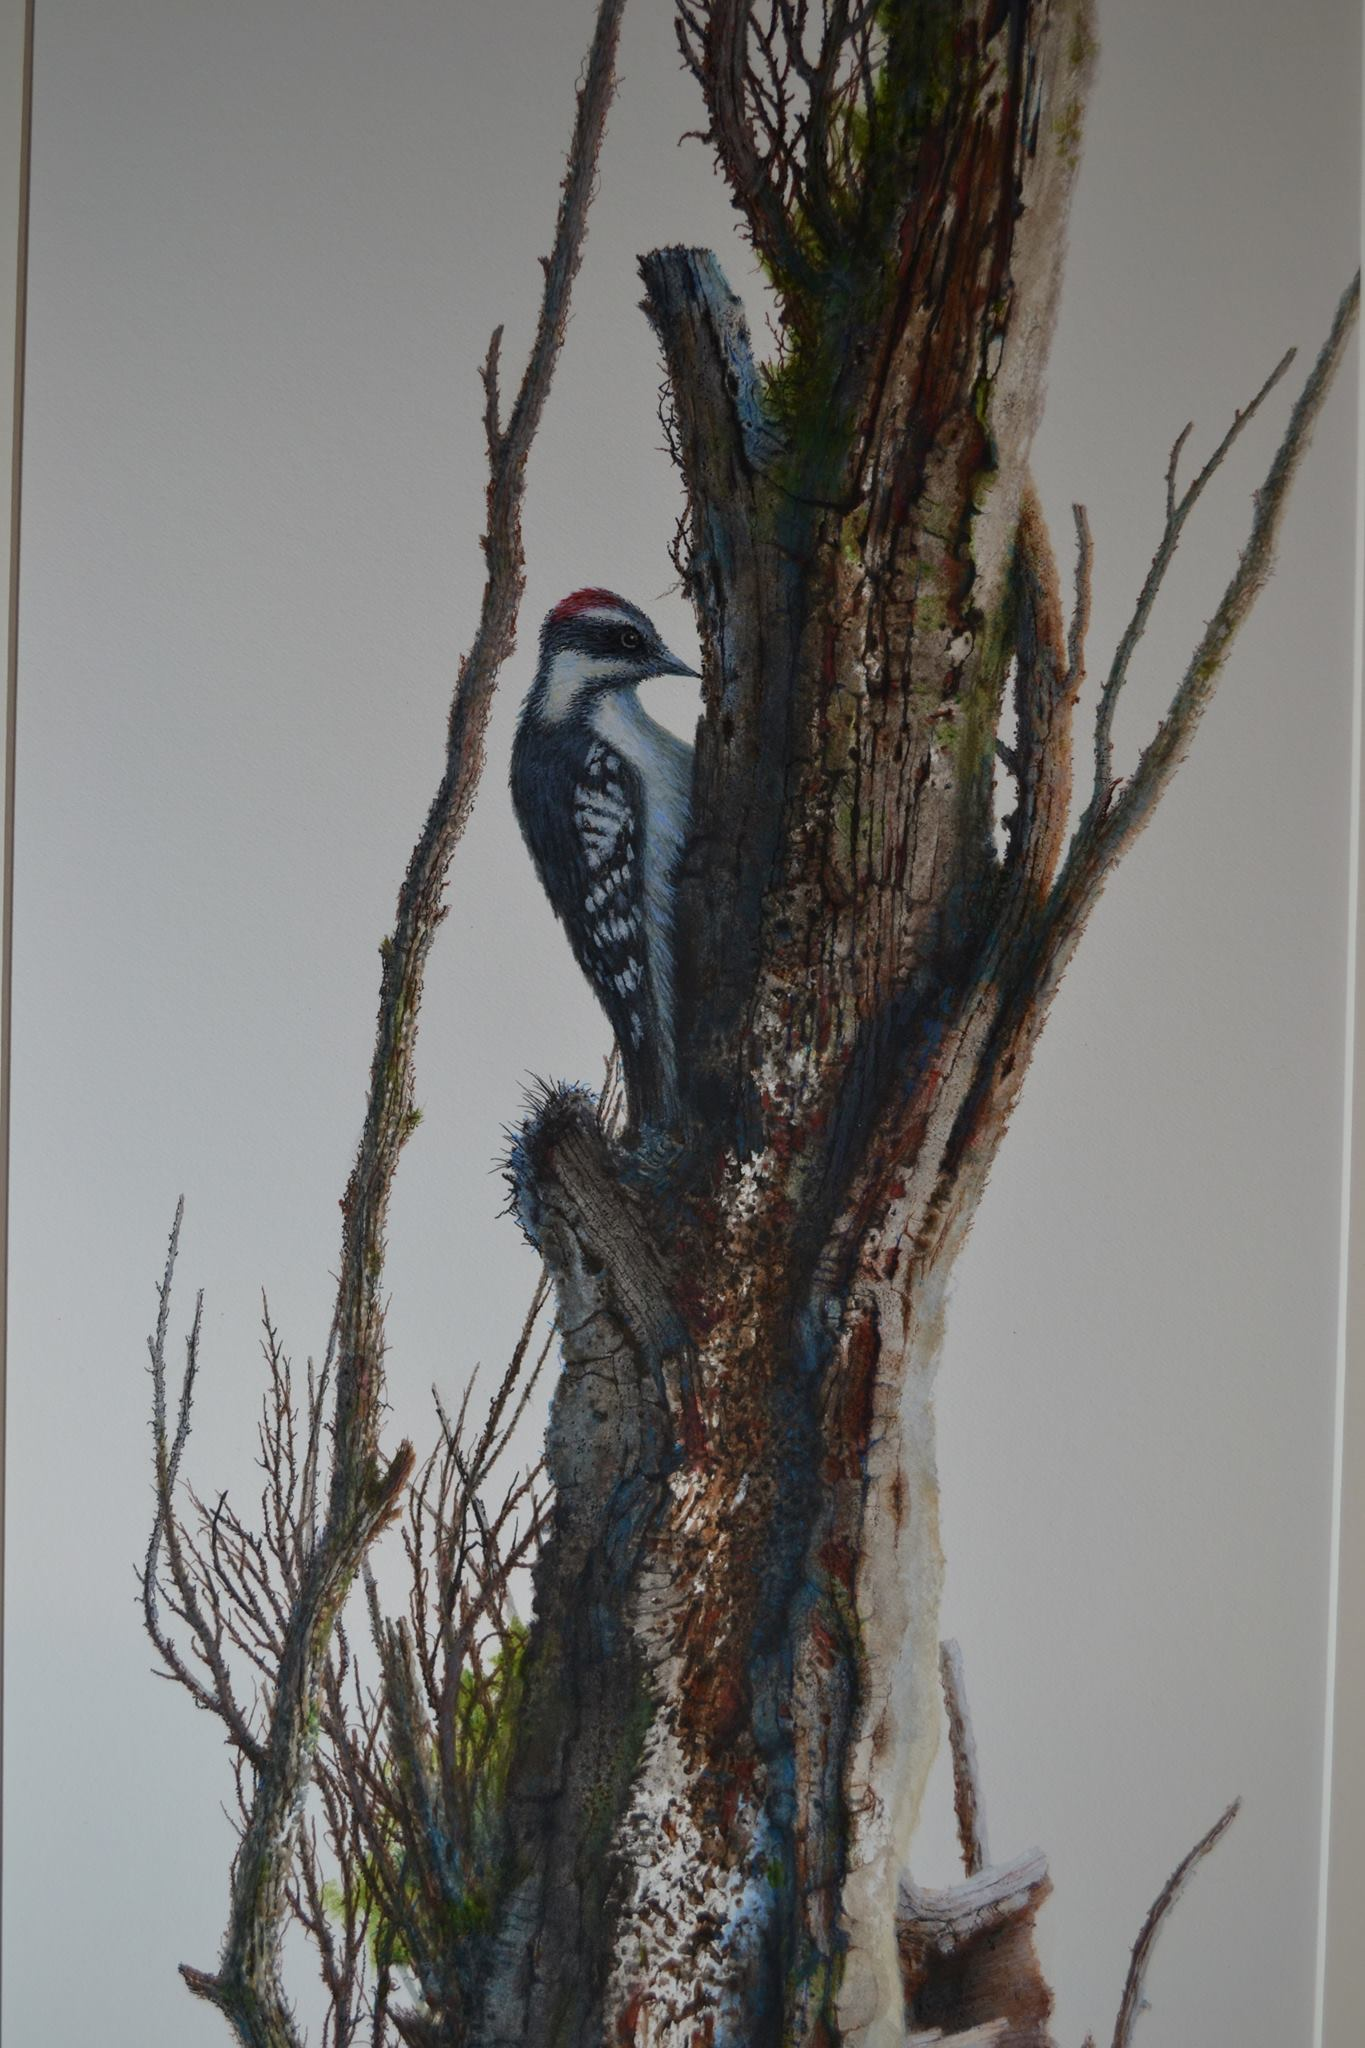 20180707_JackArt_Woodpecker_010